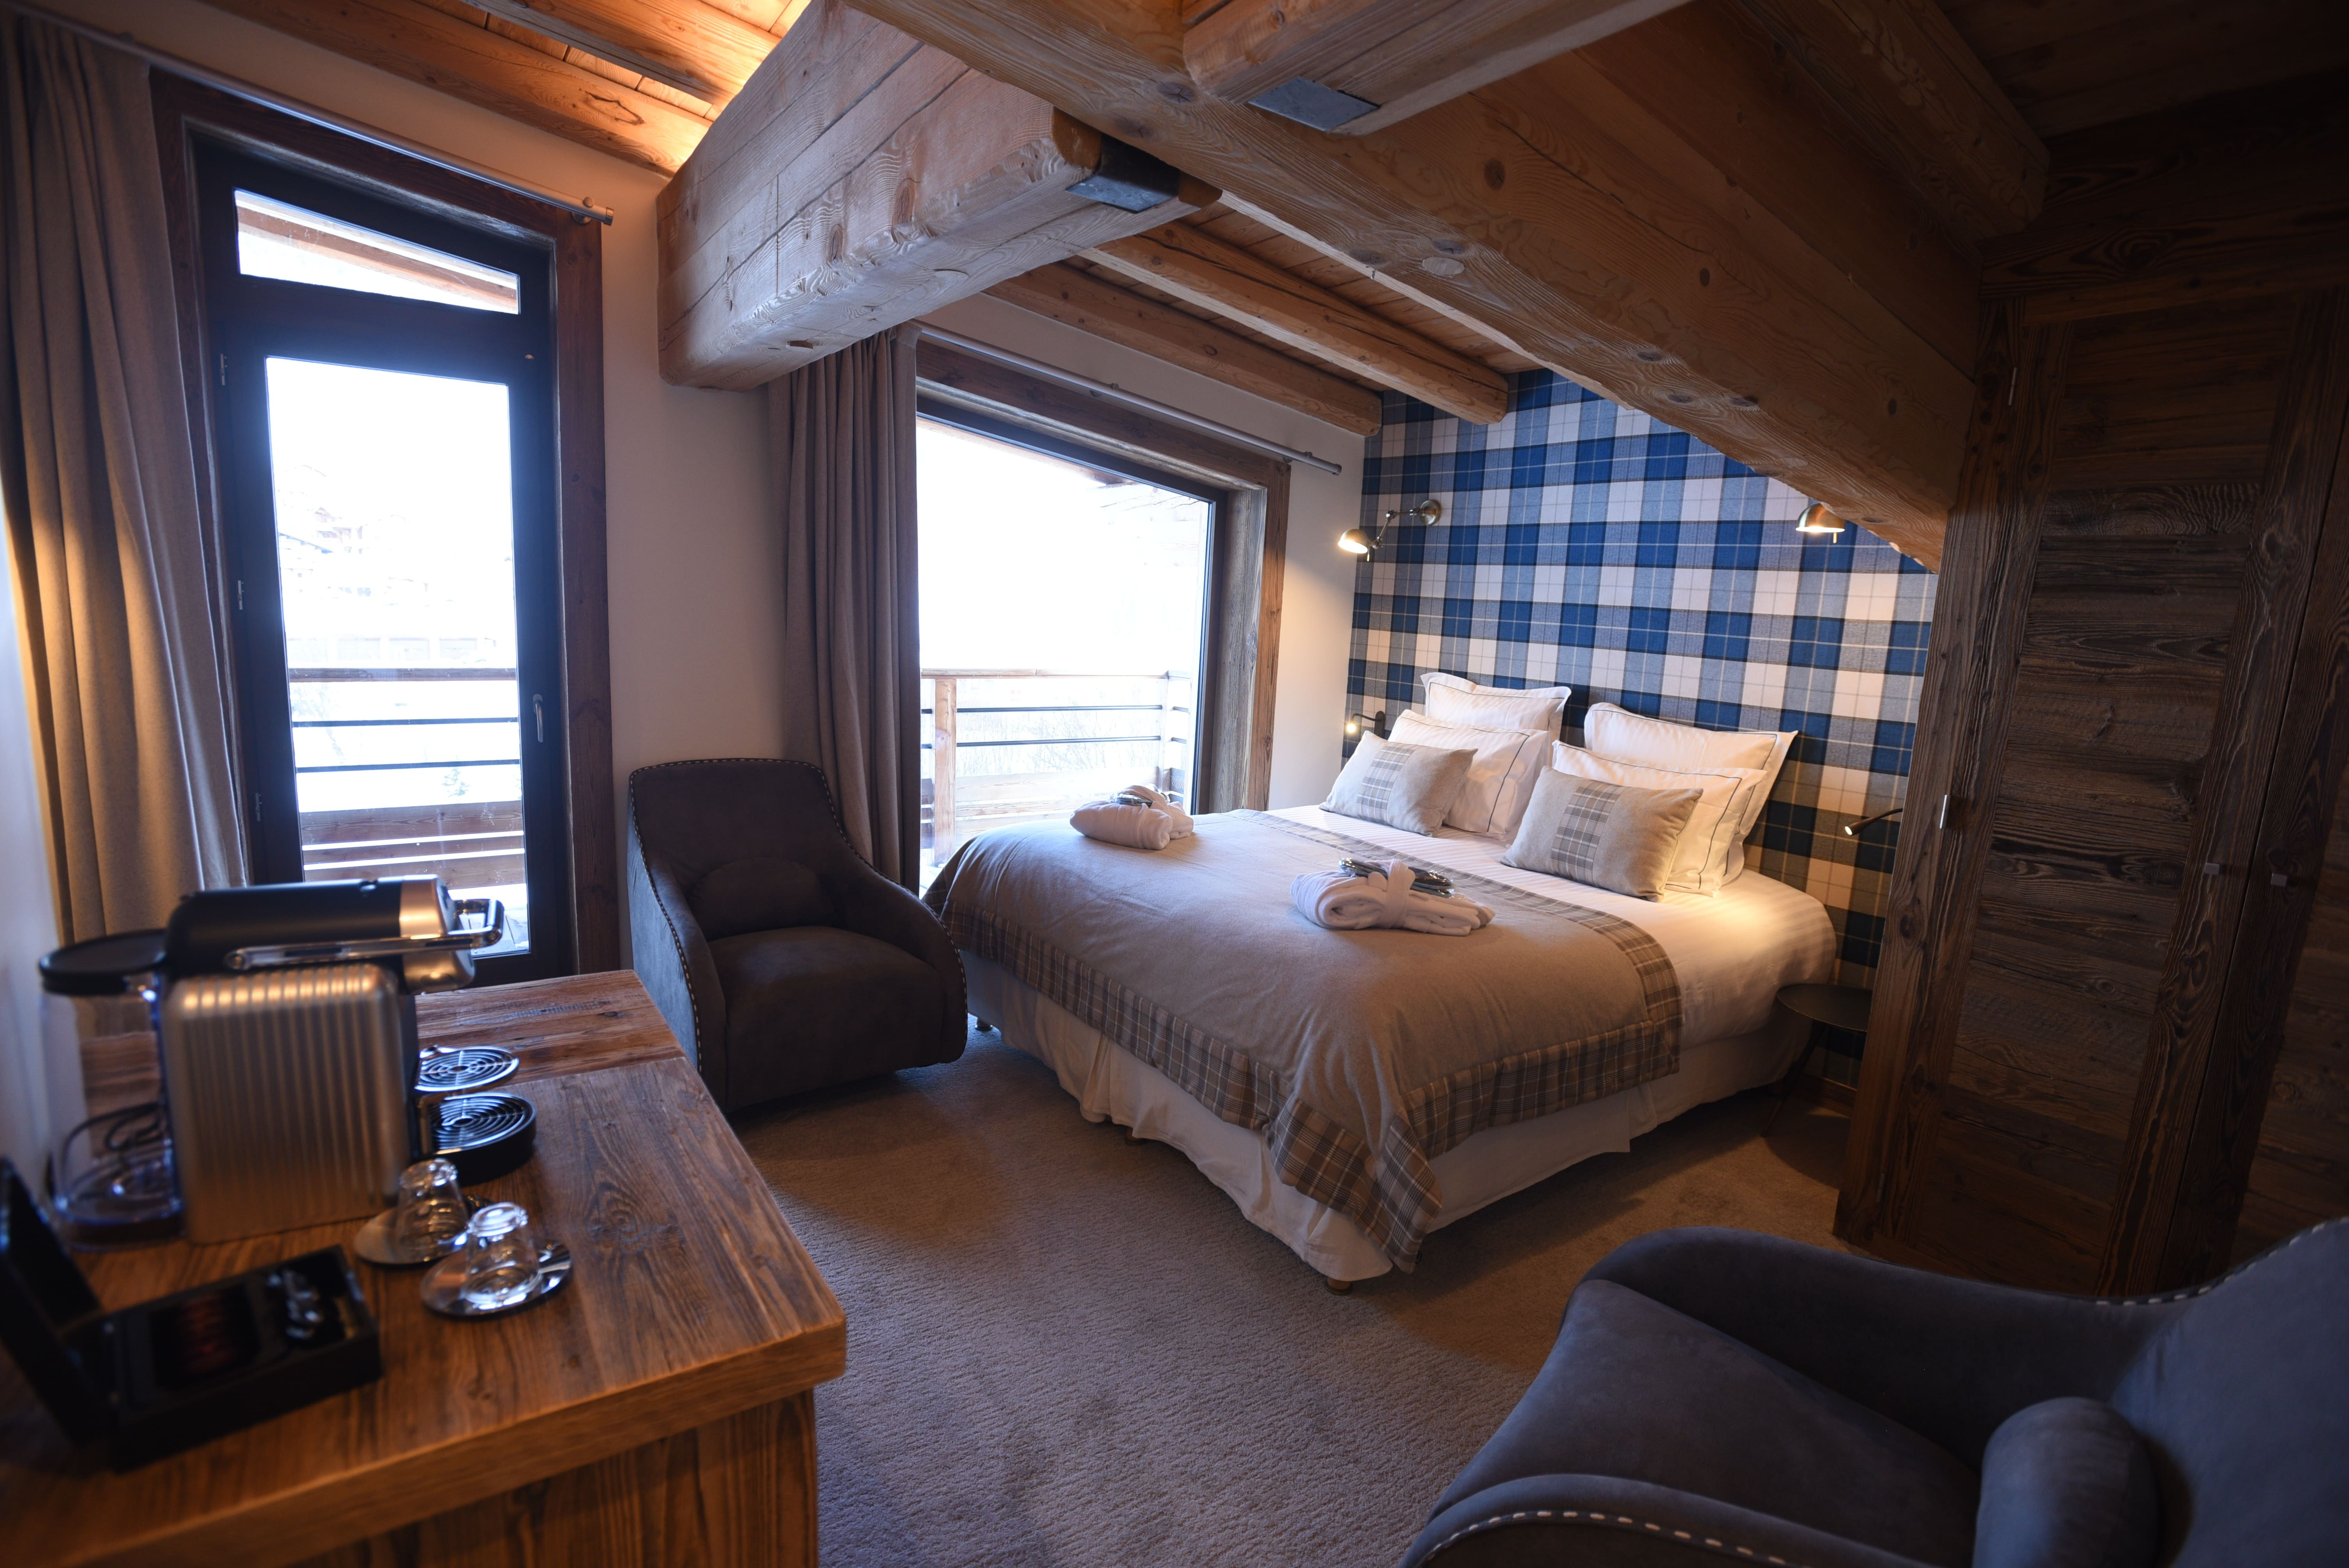 hotel-bas-des-pistes-val-d'isere-chambre-deluxe-thalia